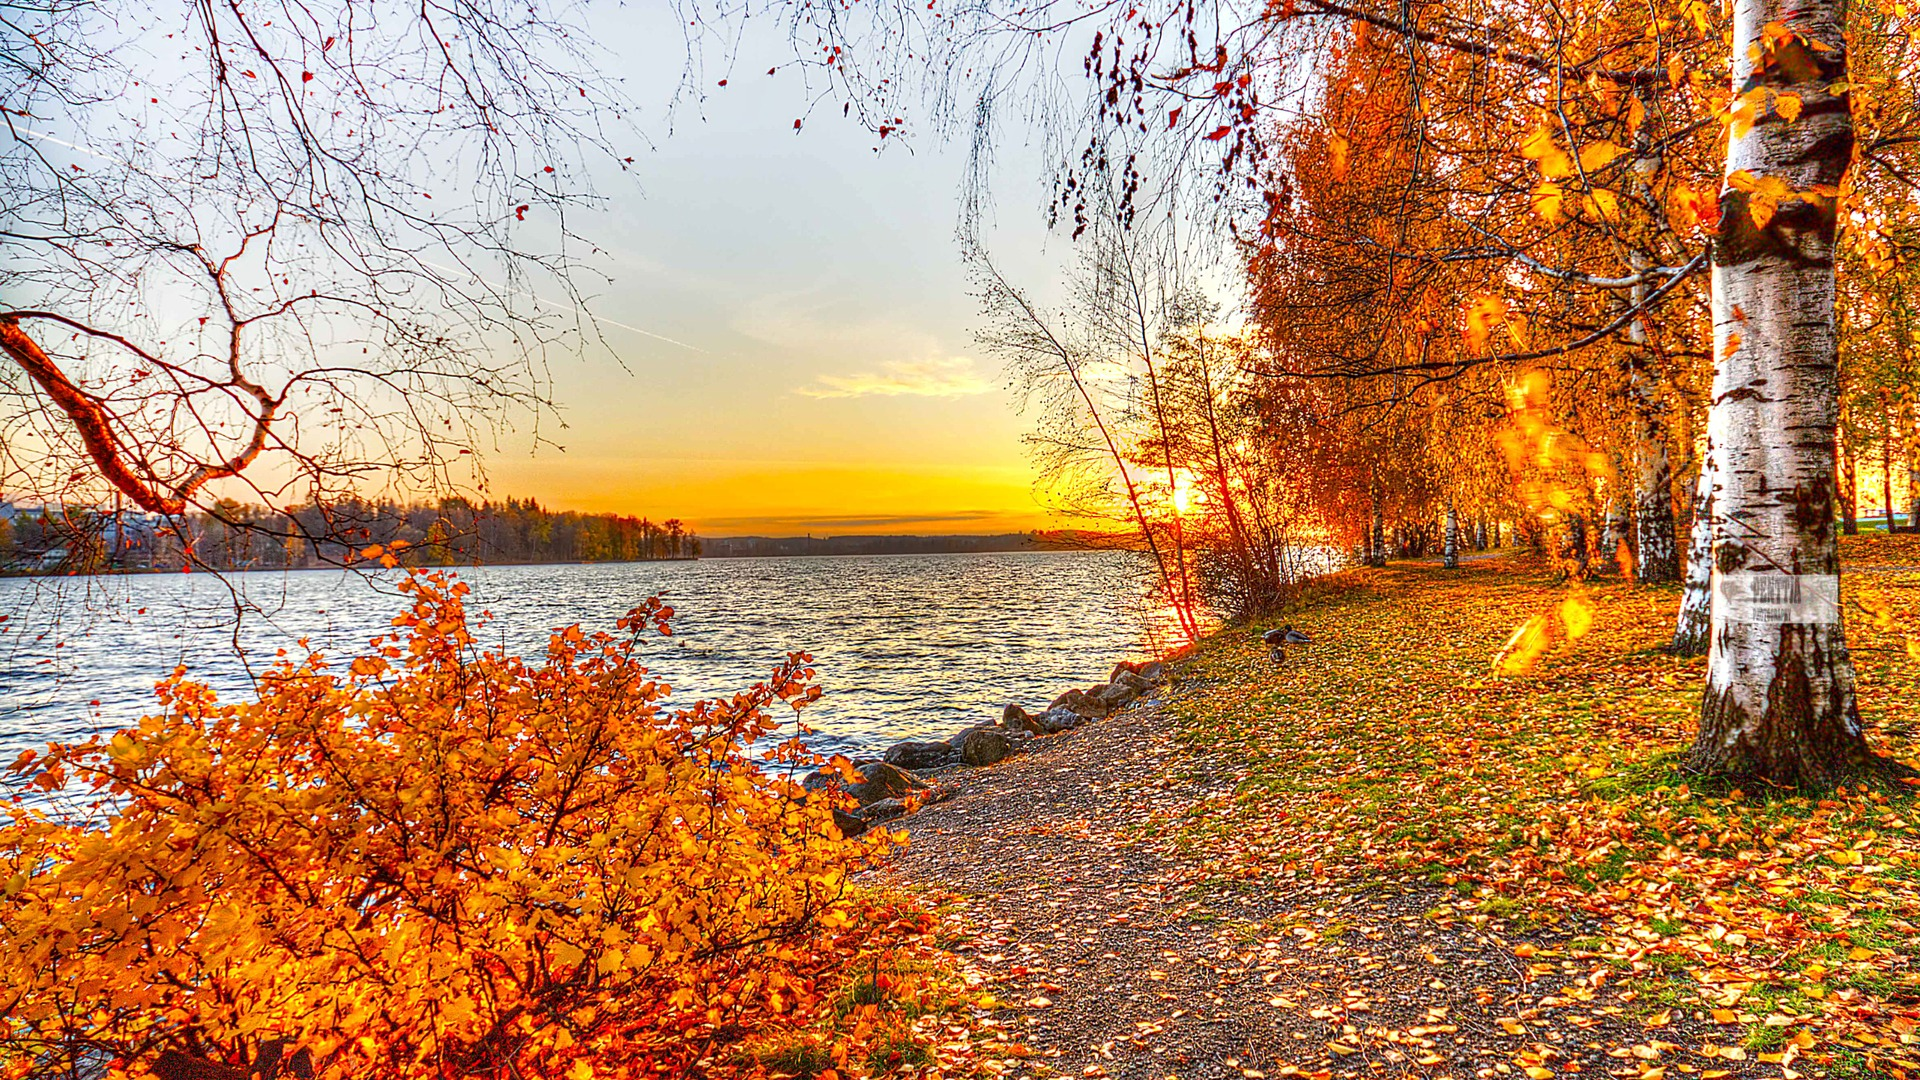 Amazing Autumn Landscape Wallpaper